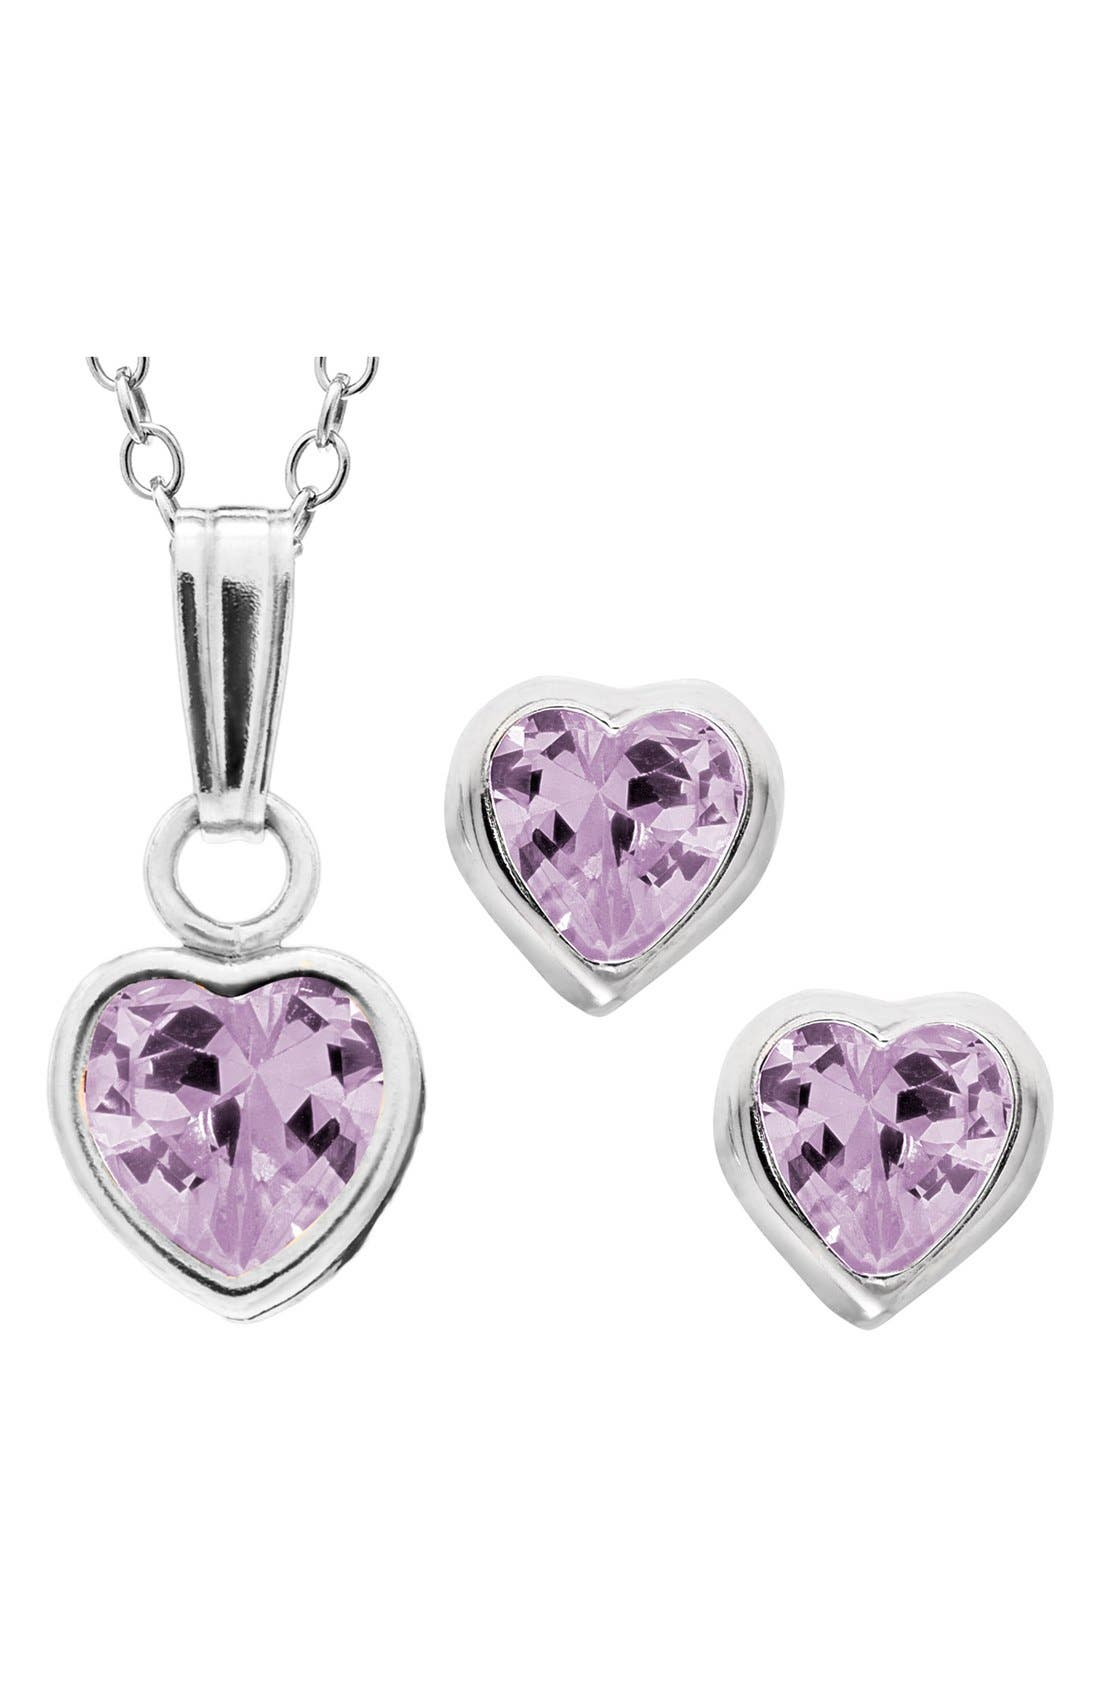 Sterling Silver & Cubic Zirconia Birthstone Necklace & Earrings Set,                             Main thumbnail 1, color,                             501